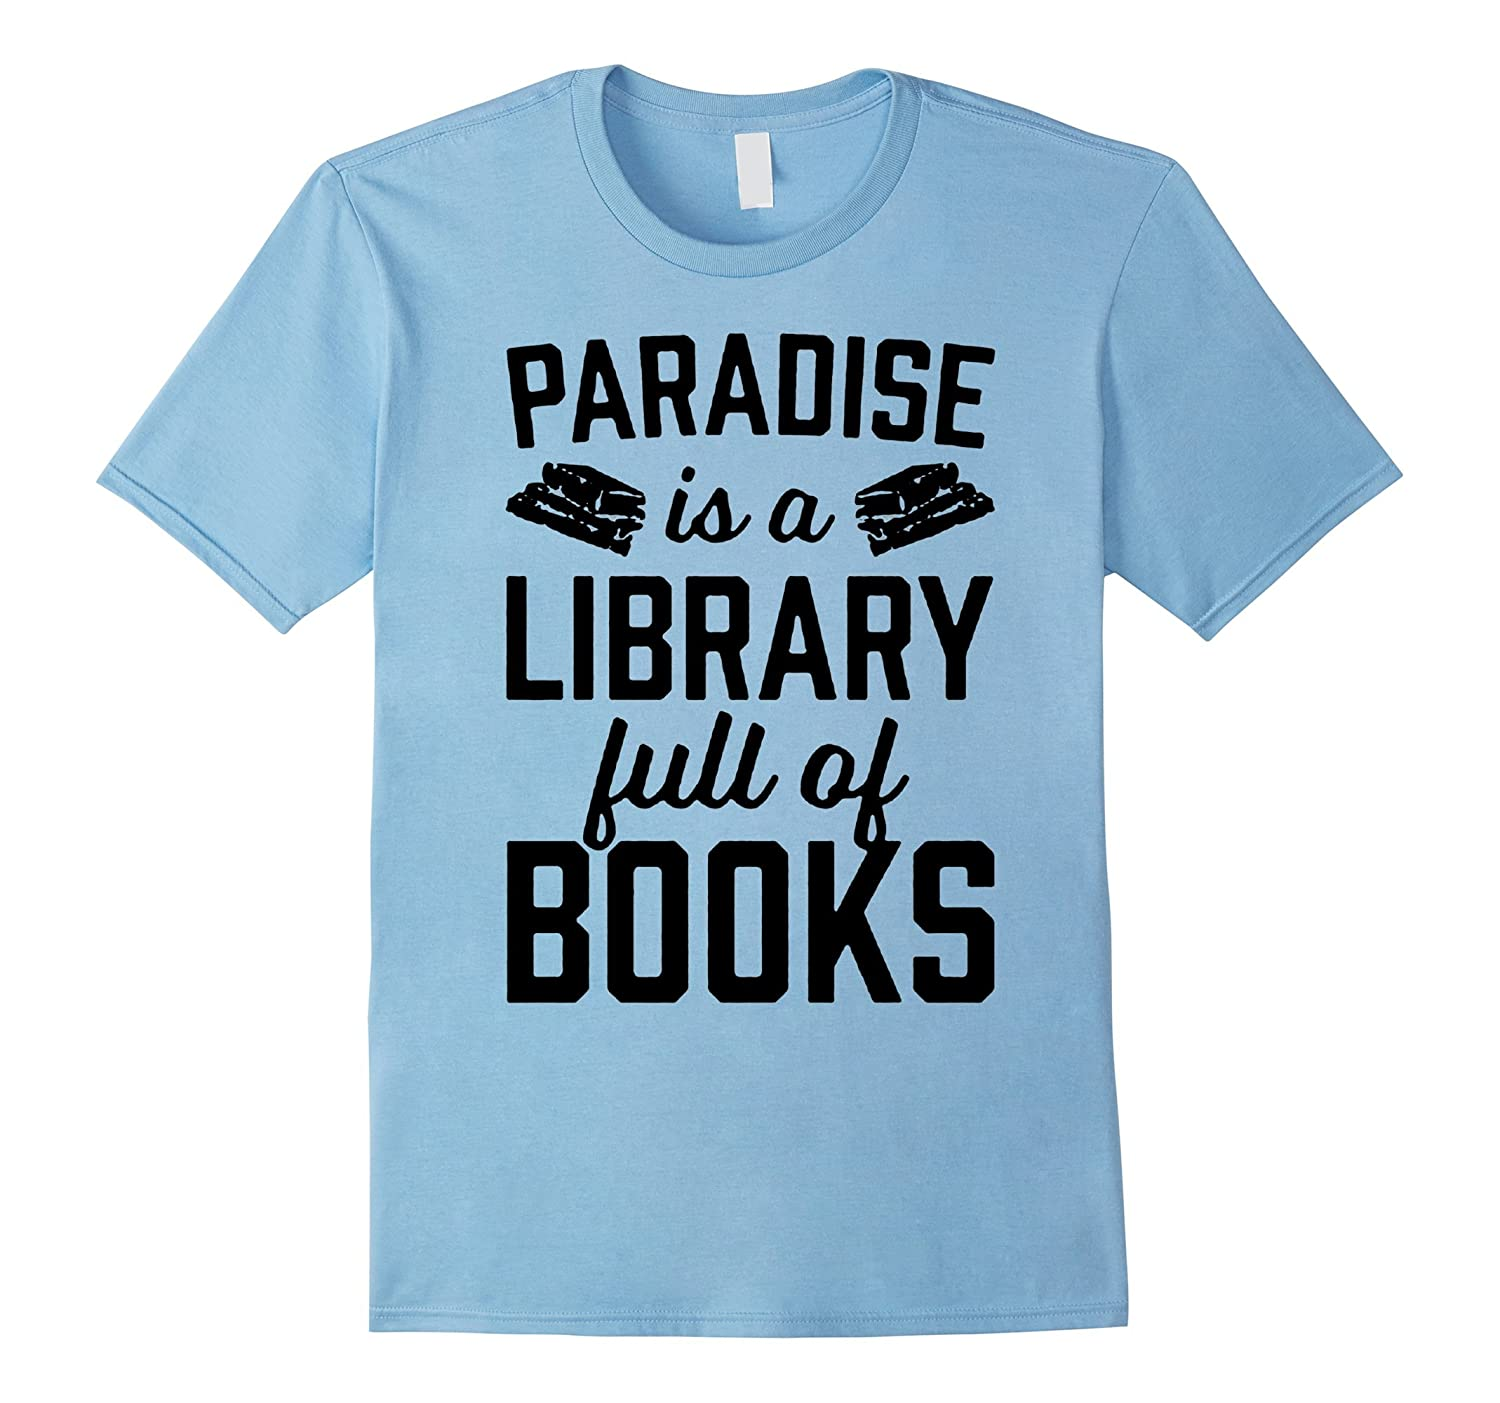 paradise is a library full of books trumpp t-shirts